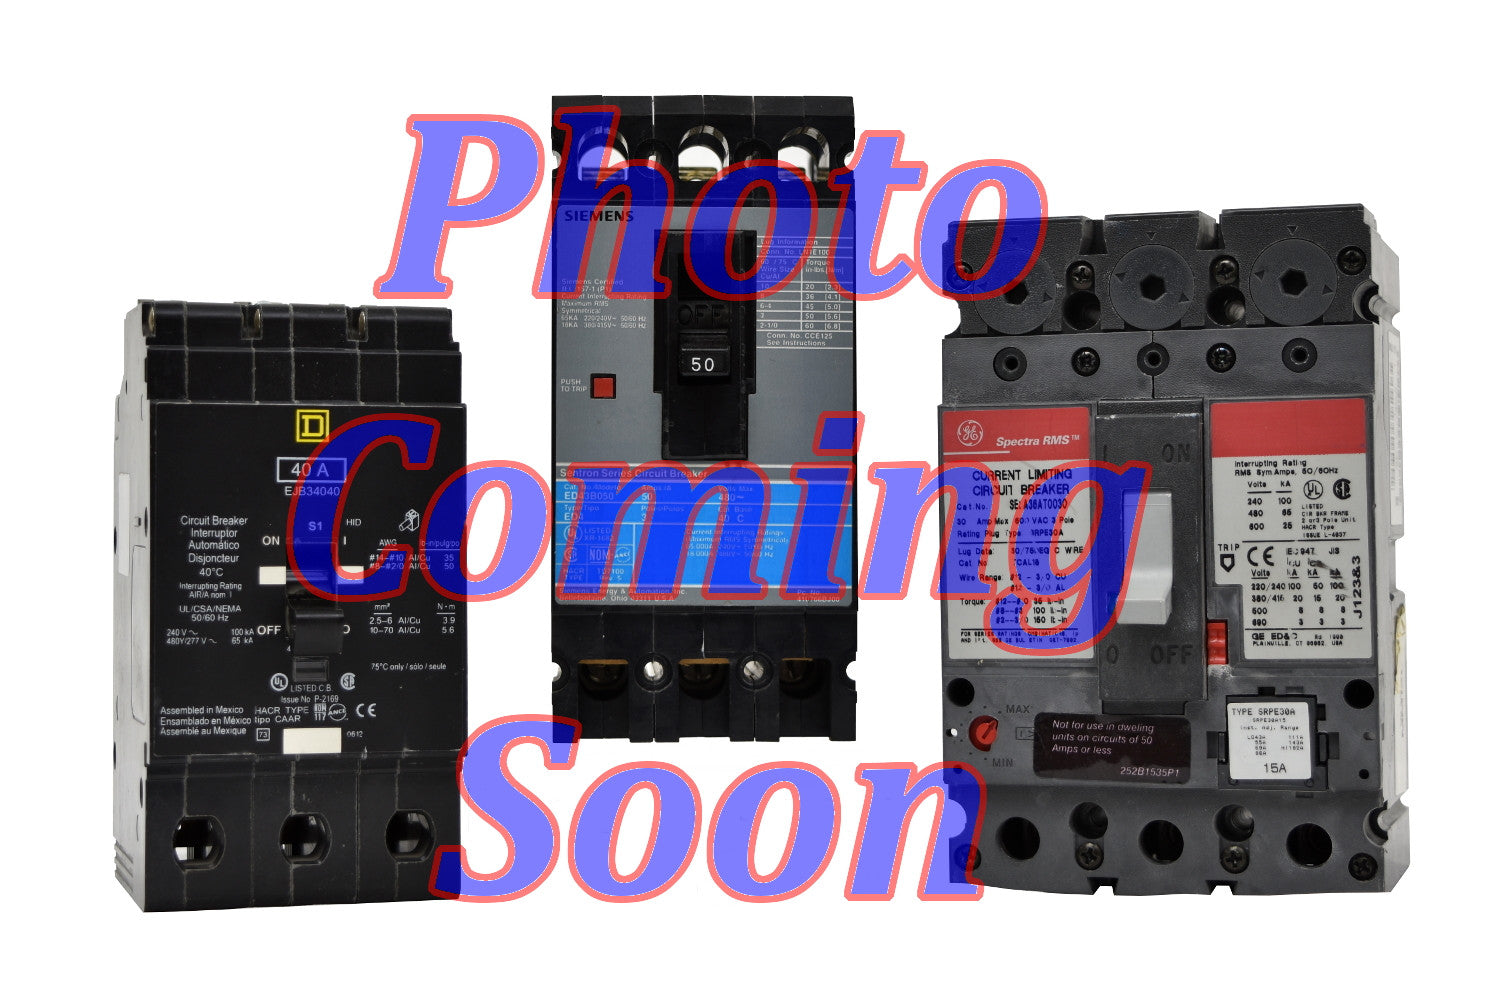 Cutler Hammer BD3020 Circuit Breakers